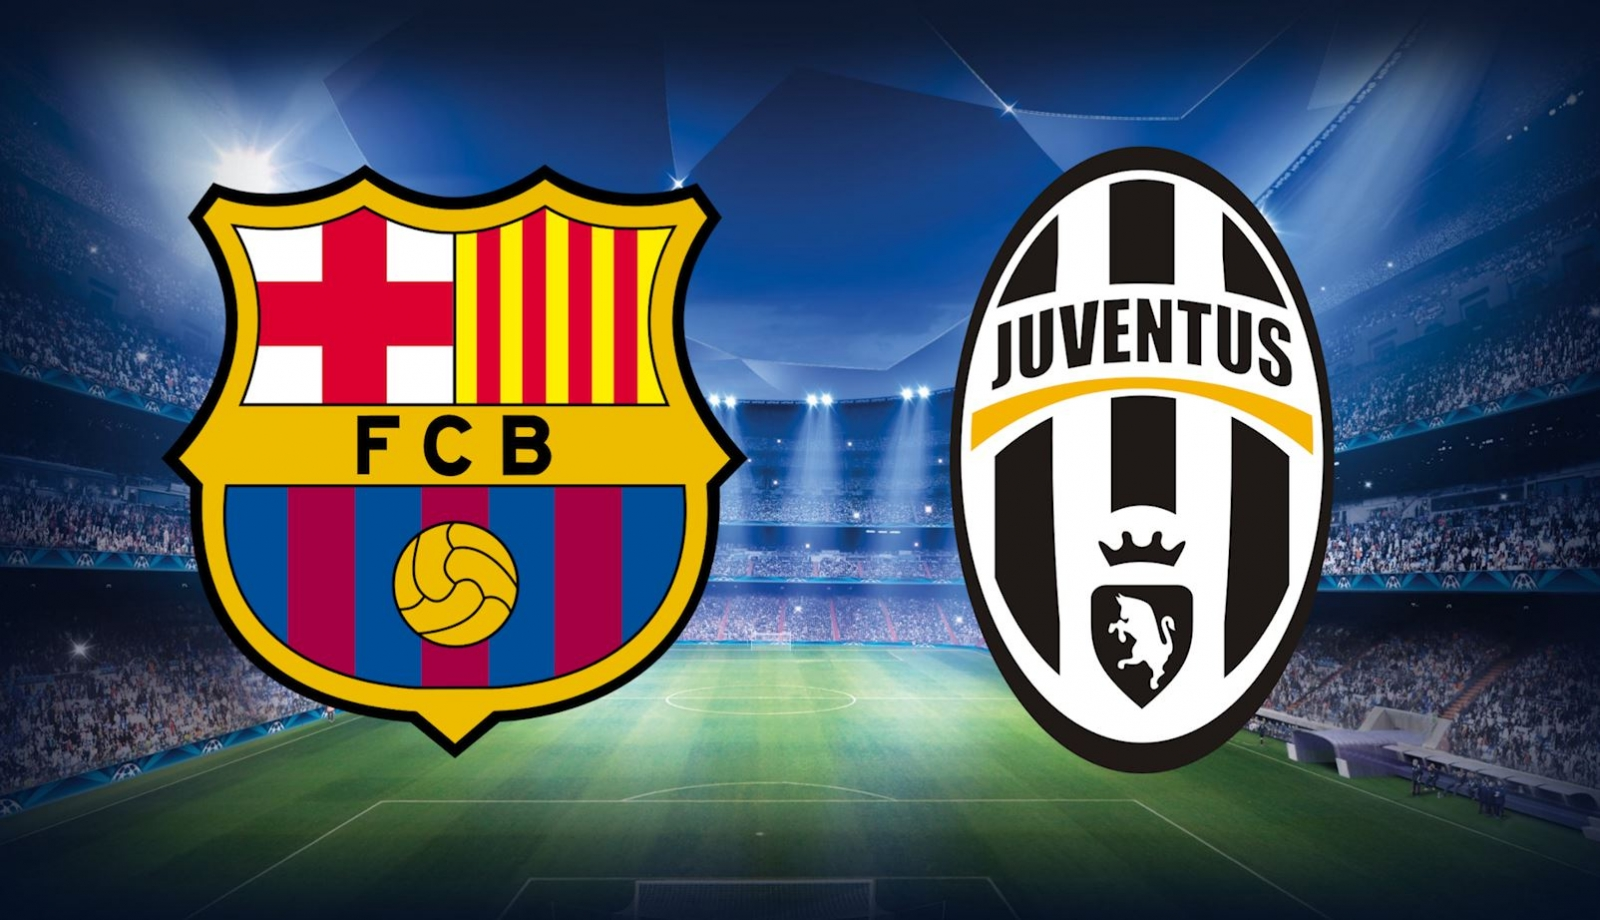 Barcelona v Juventus: Champions League final 2015 preview